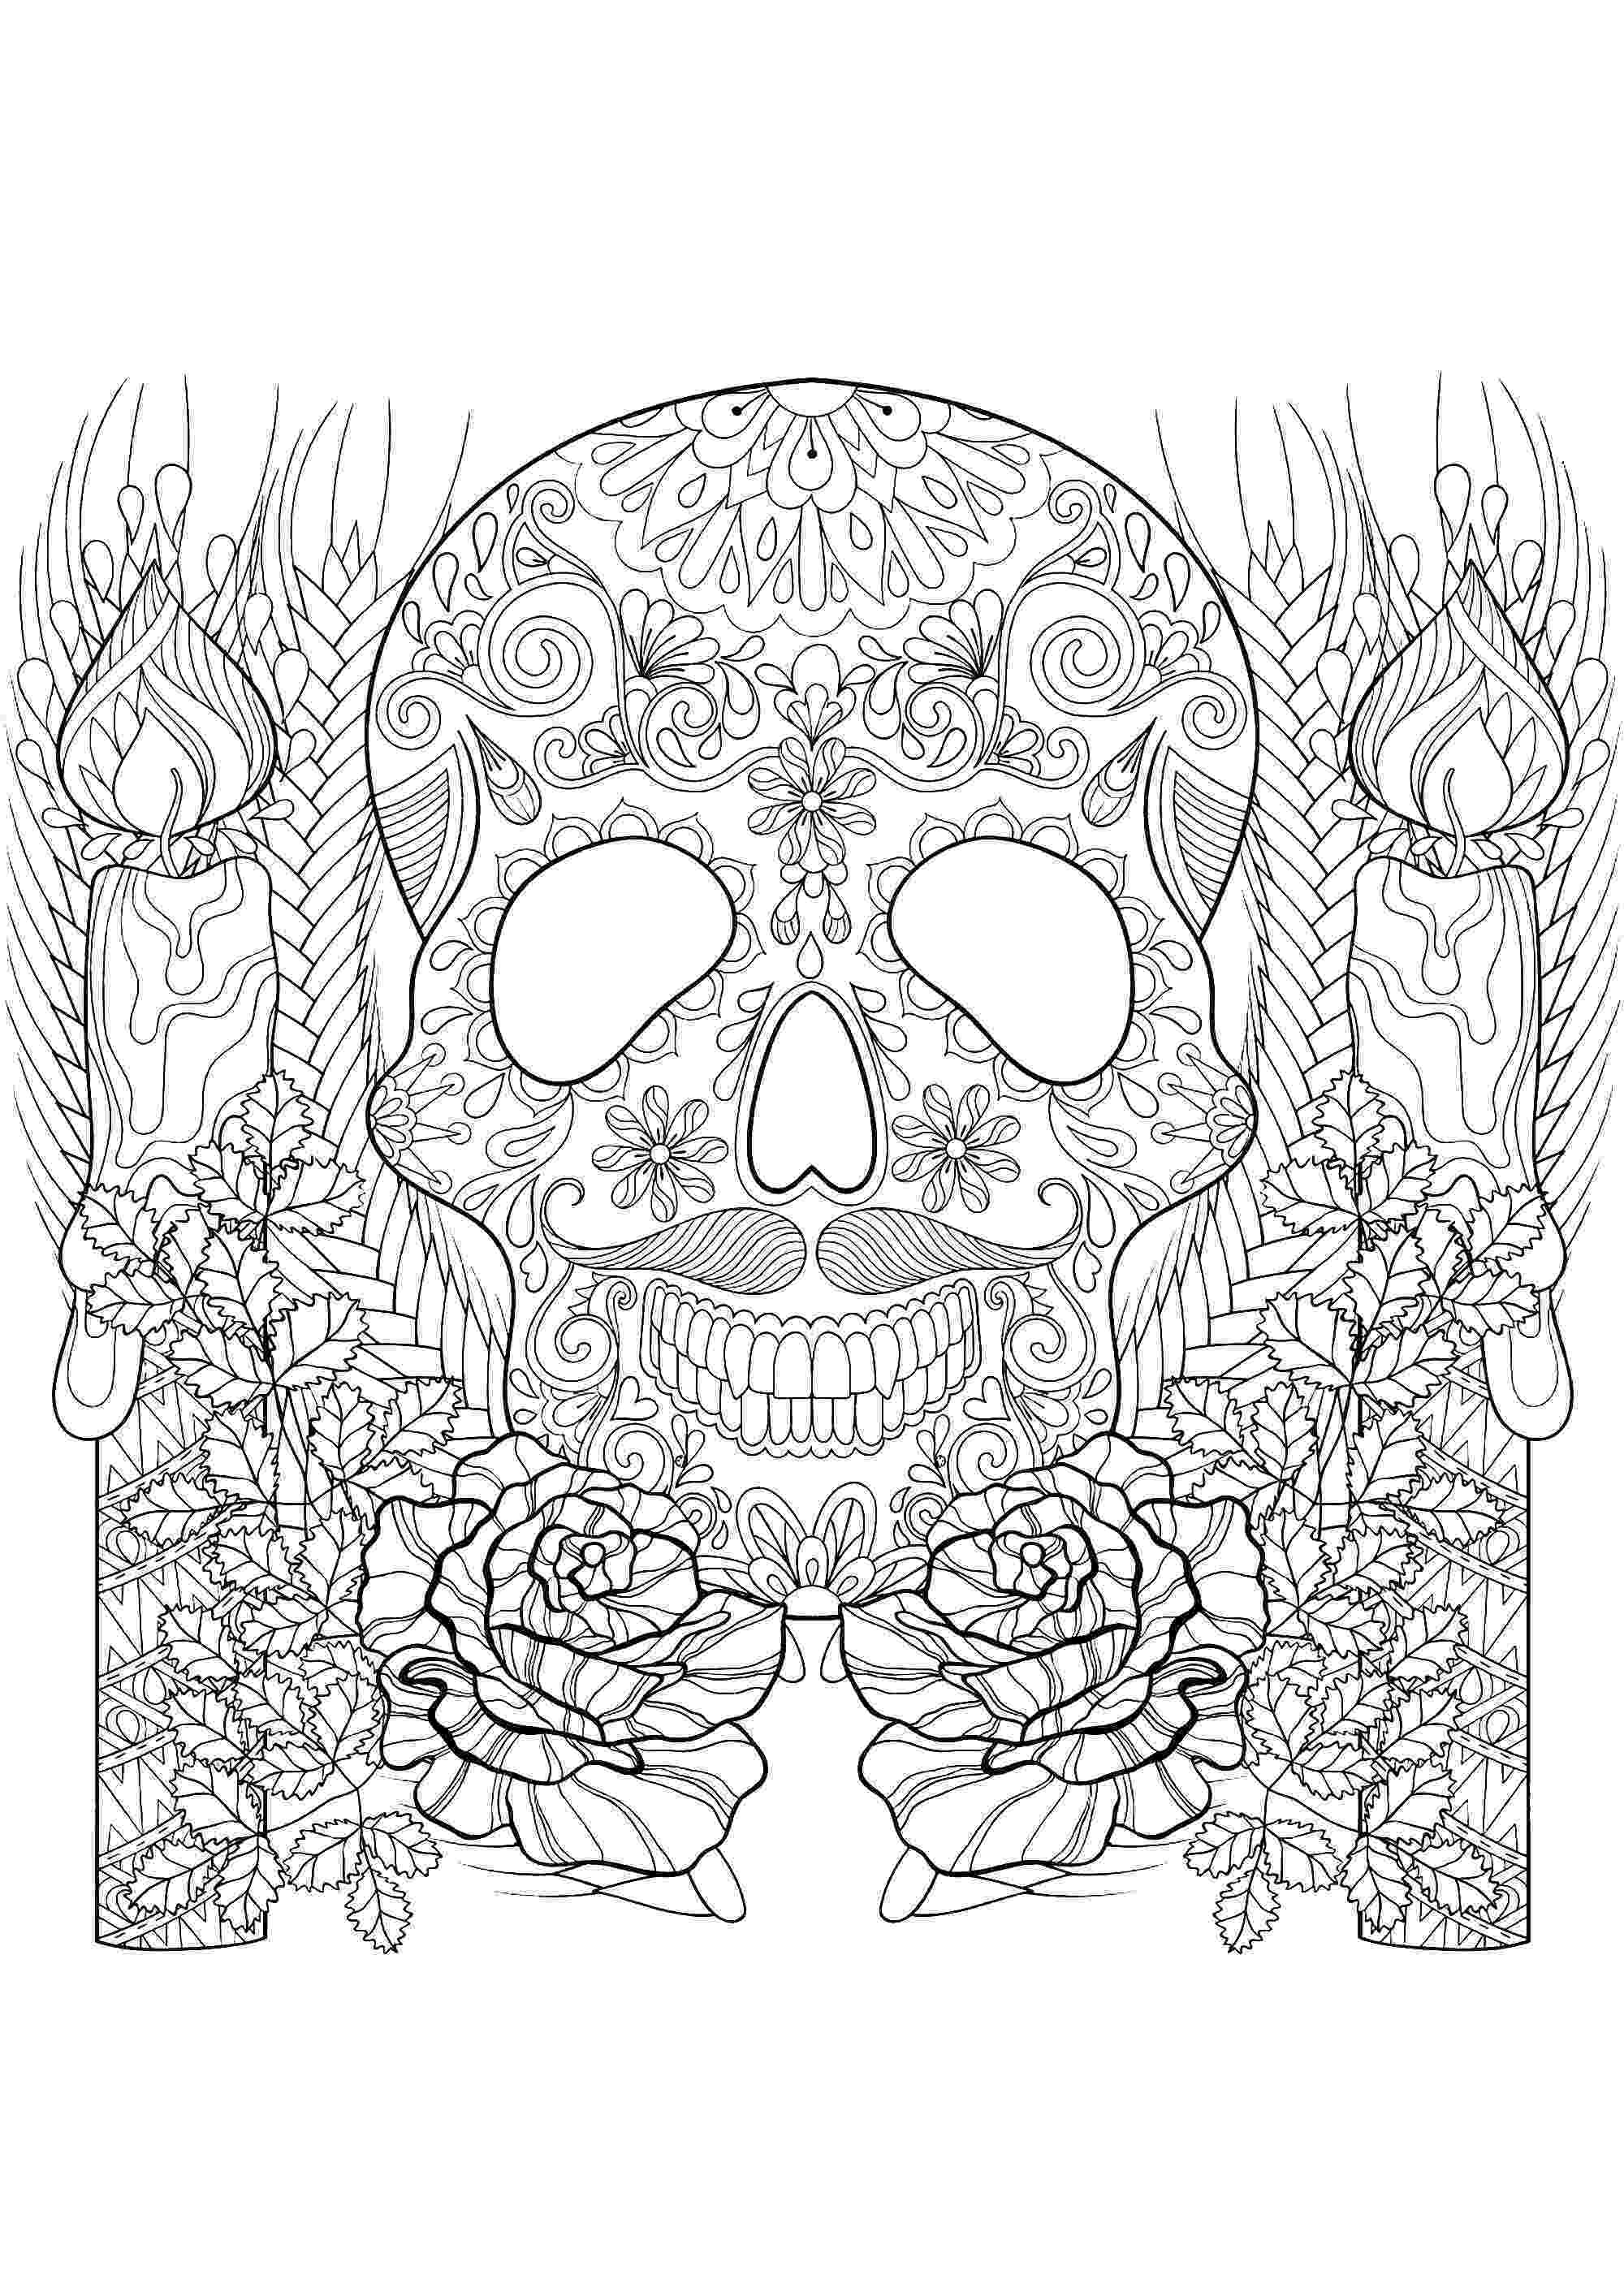 coloring pages online for adults fantasy coloring pages to download and print for free online for pages adults coloring